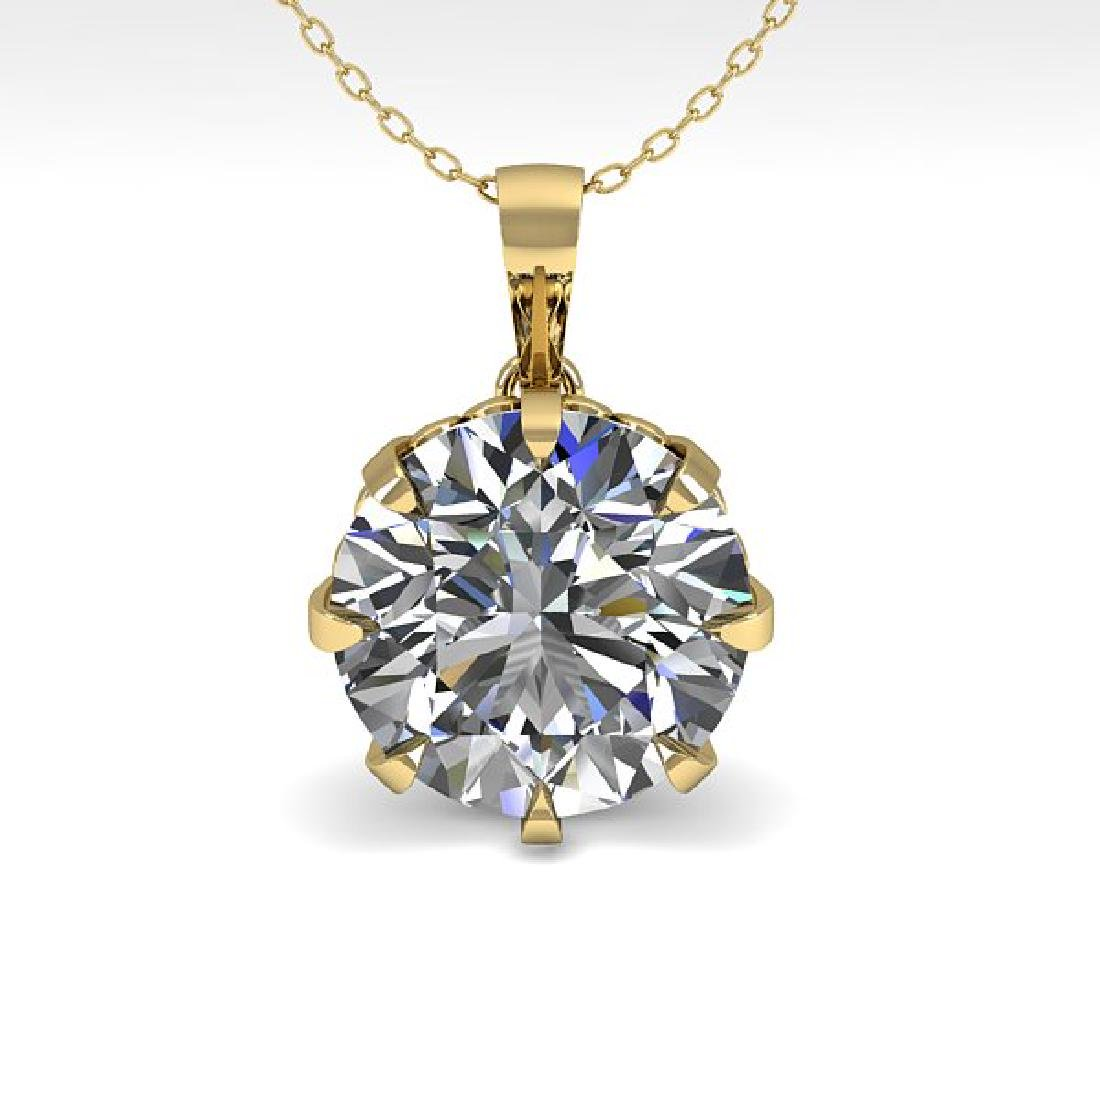 2 CTW VS/SI Diamond Solitaire Necklace 14K Yellow Gold - 2